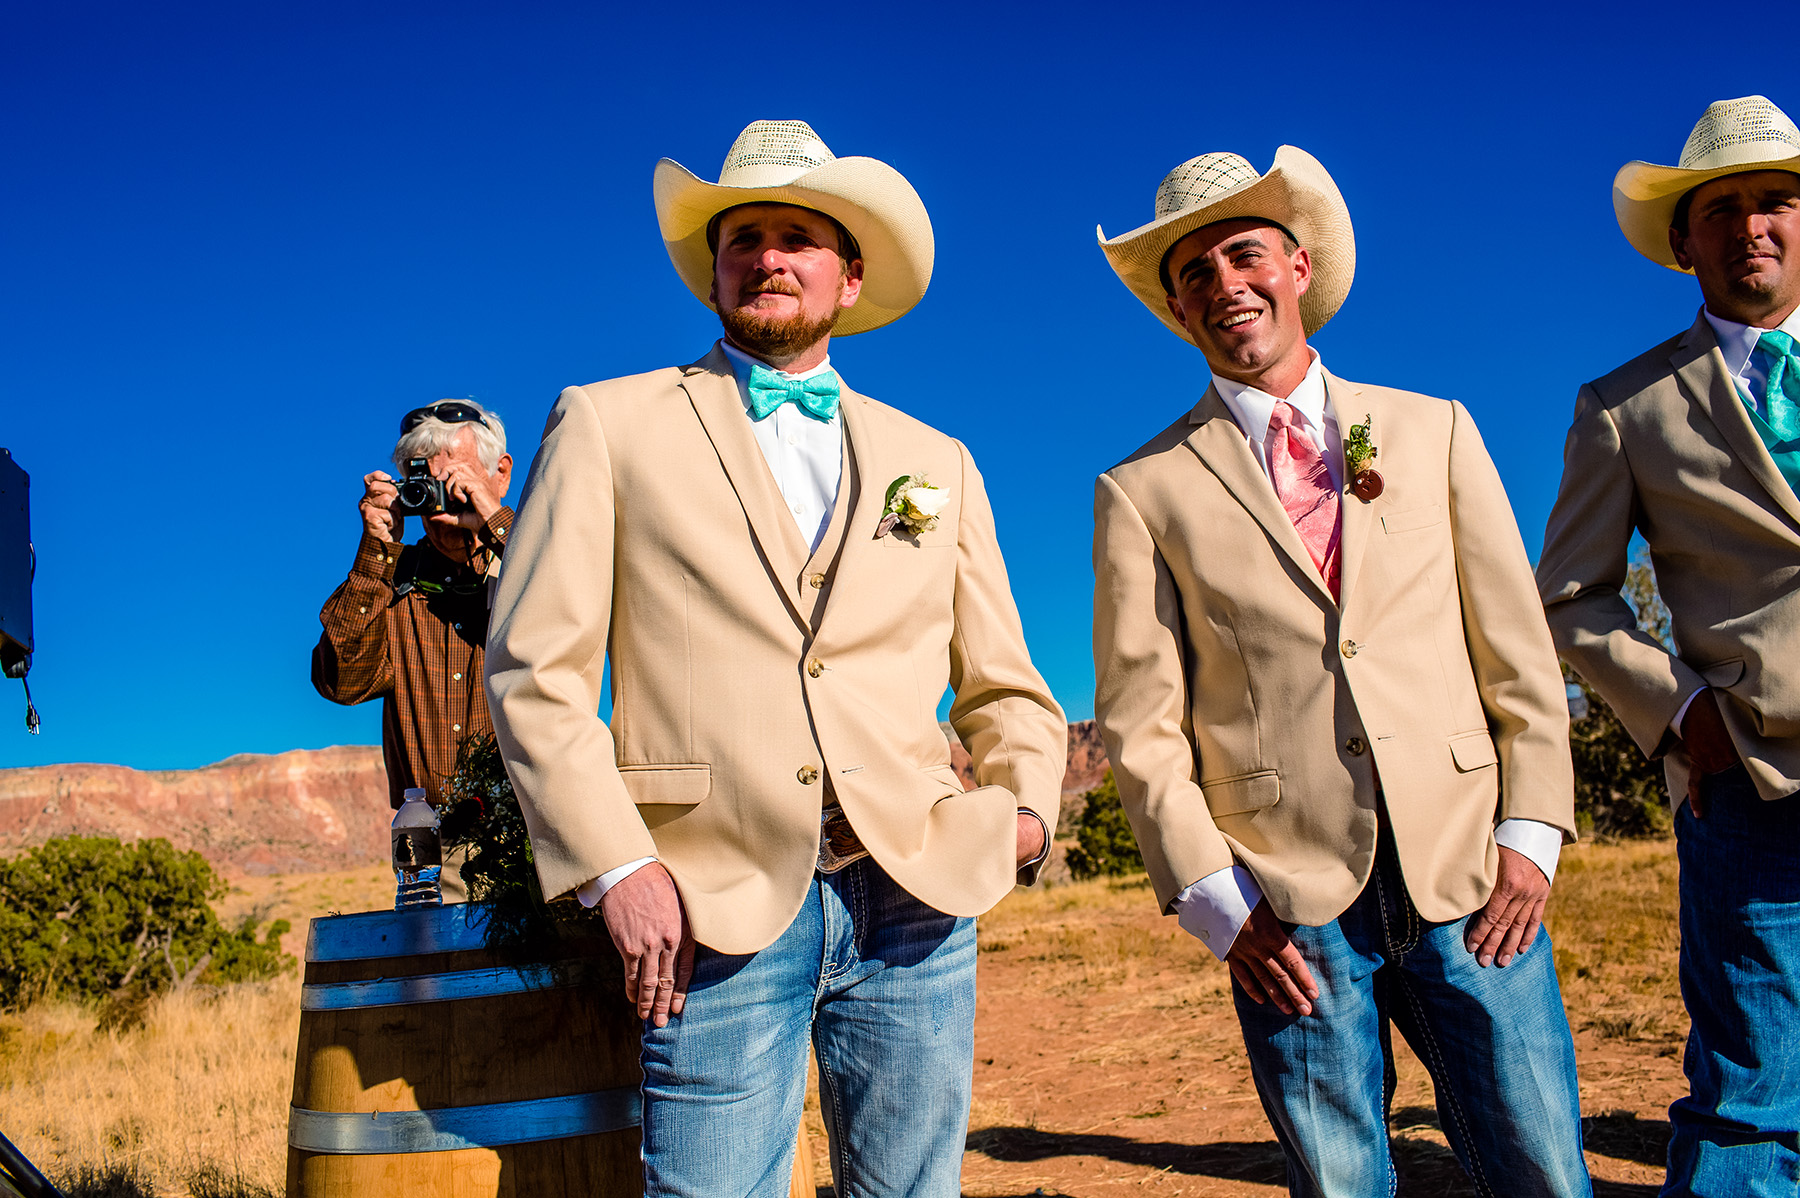 chelsea-and-brandon-ghost-ranch-wedding-2015-1009